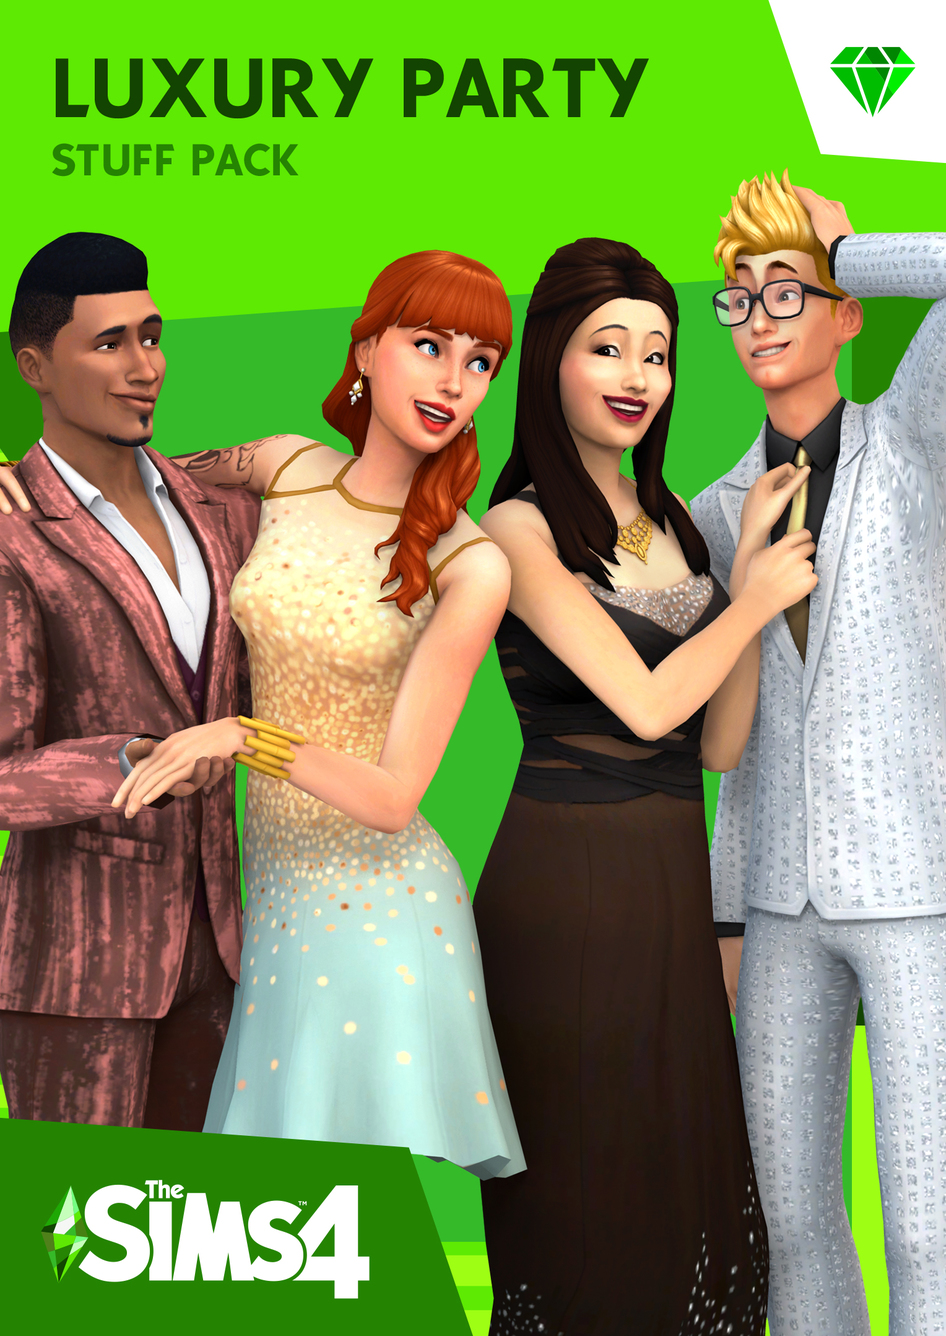 The Sims 4 Luxury Party Stuff Pack - Origin